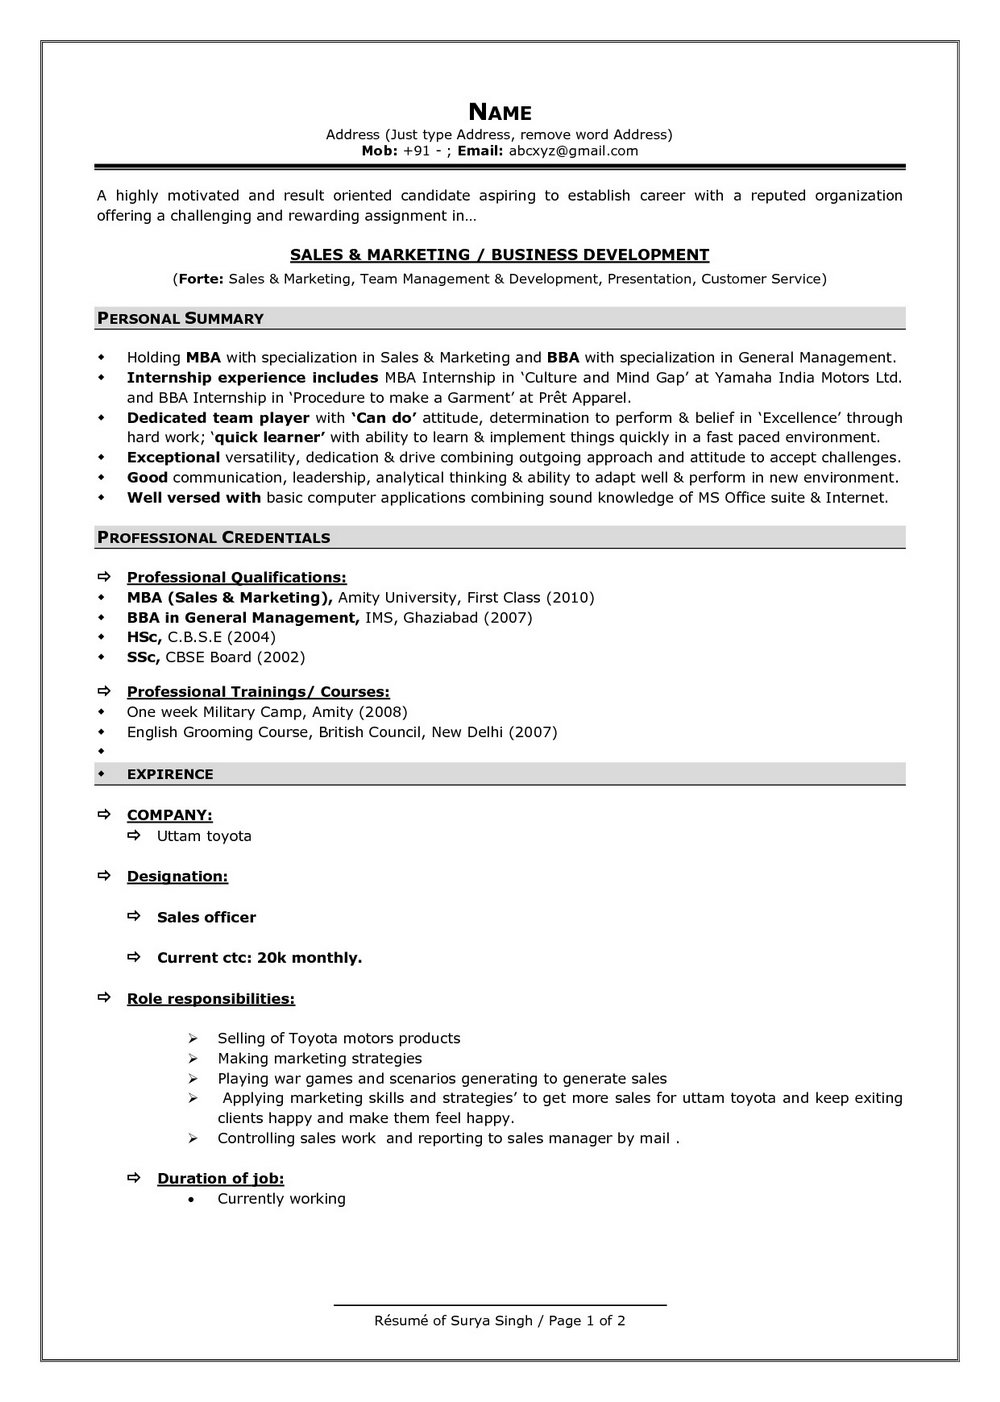 Simple Resume Format In Word For Experienced